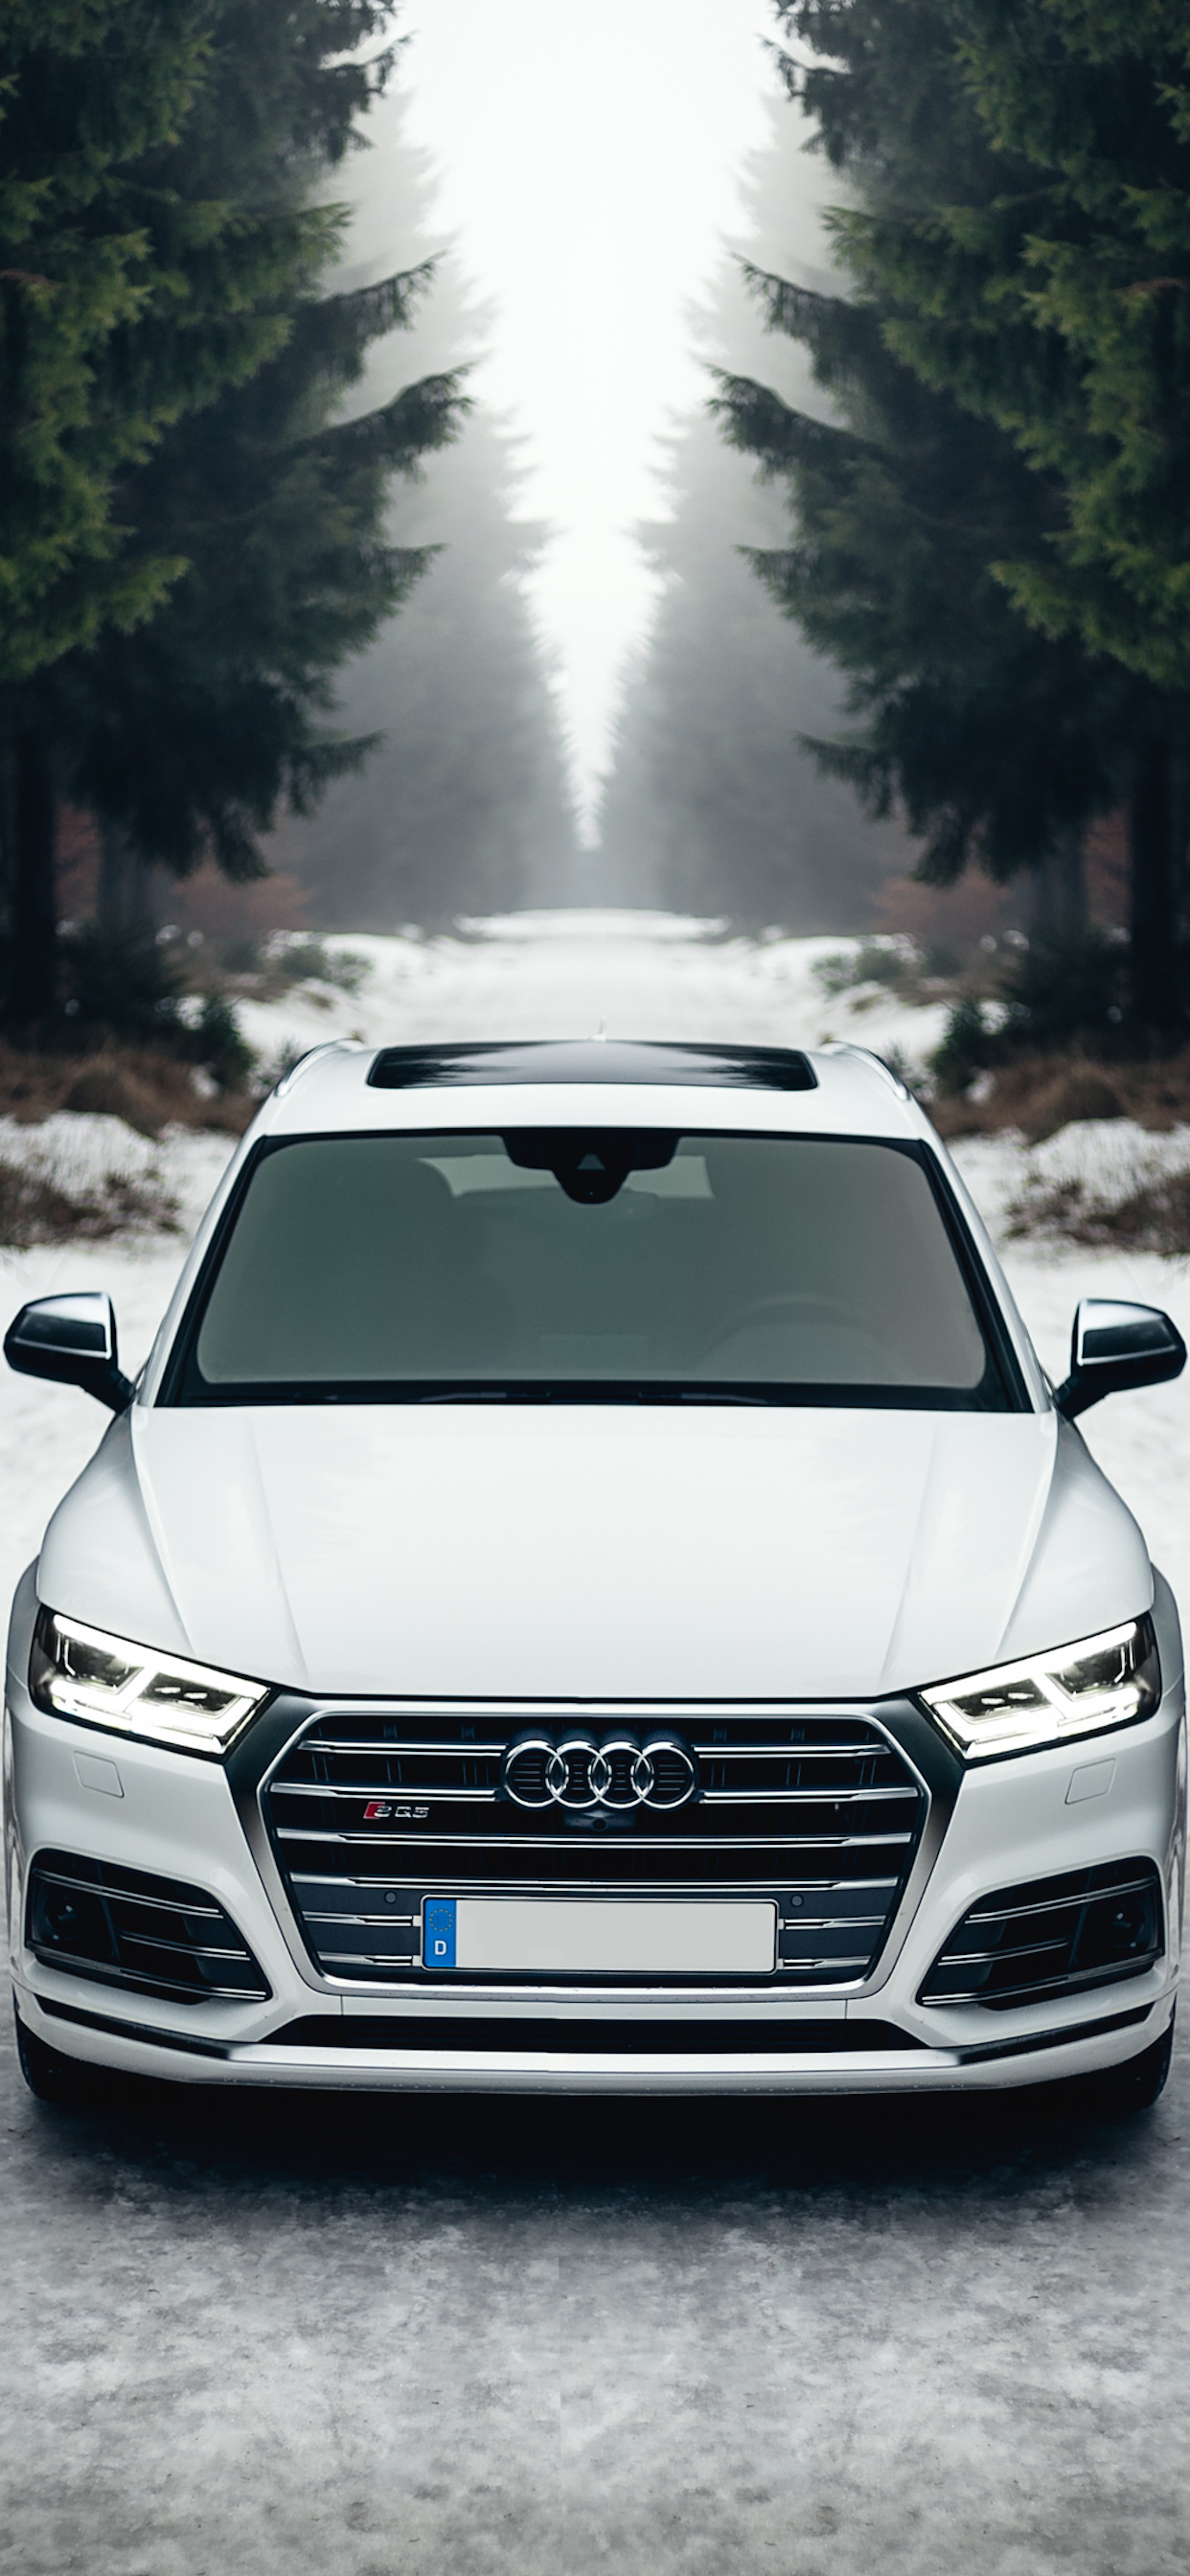 iPhone wallpaper car audi altenberg Fonds d'écran iPhone du 28/10/2019